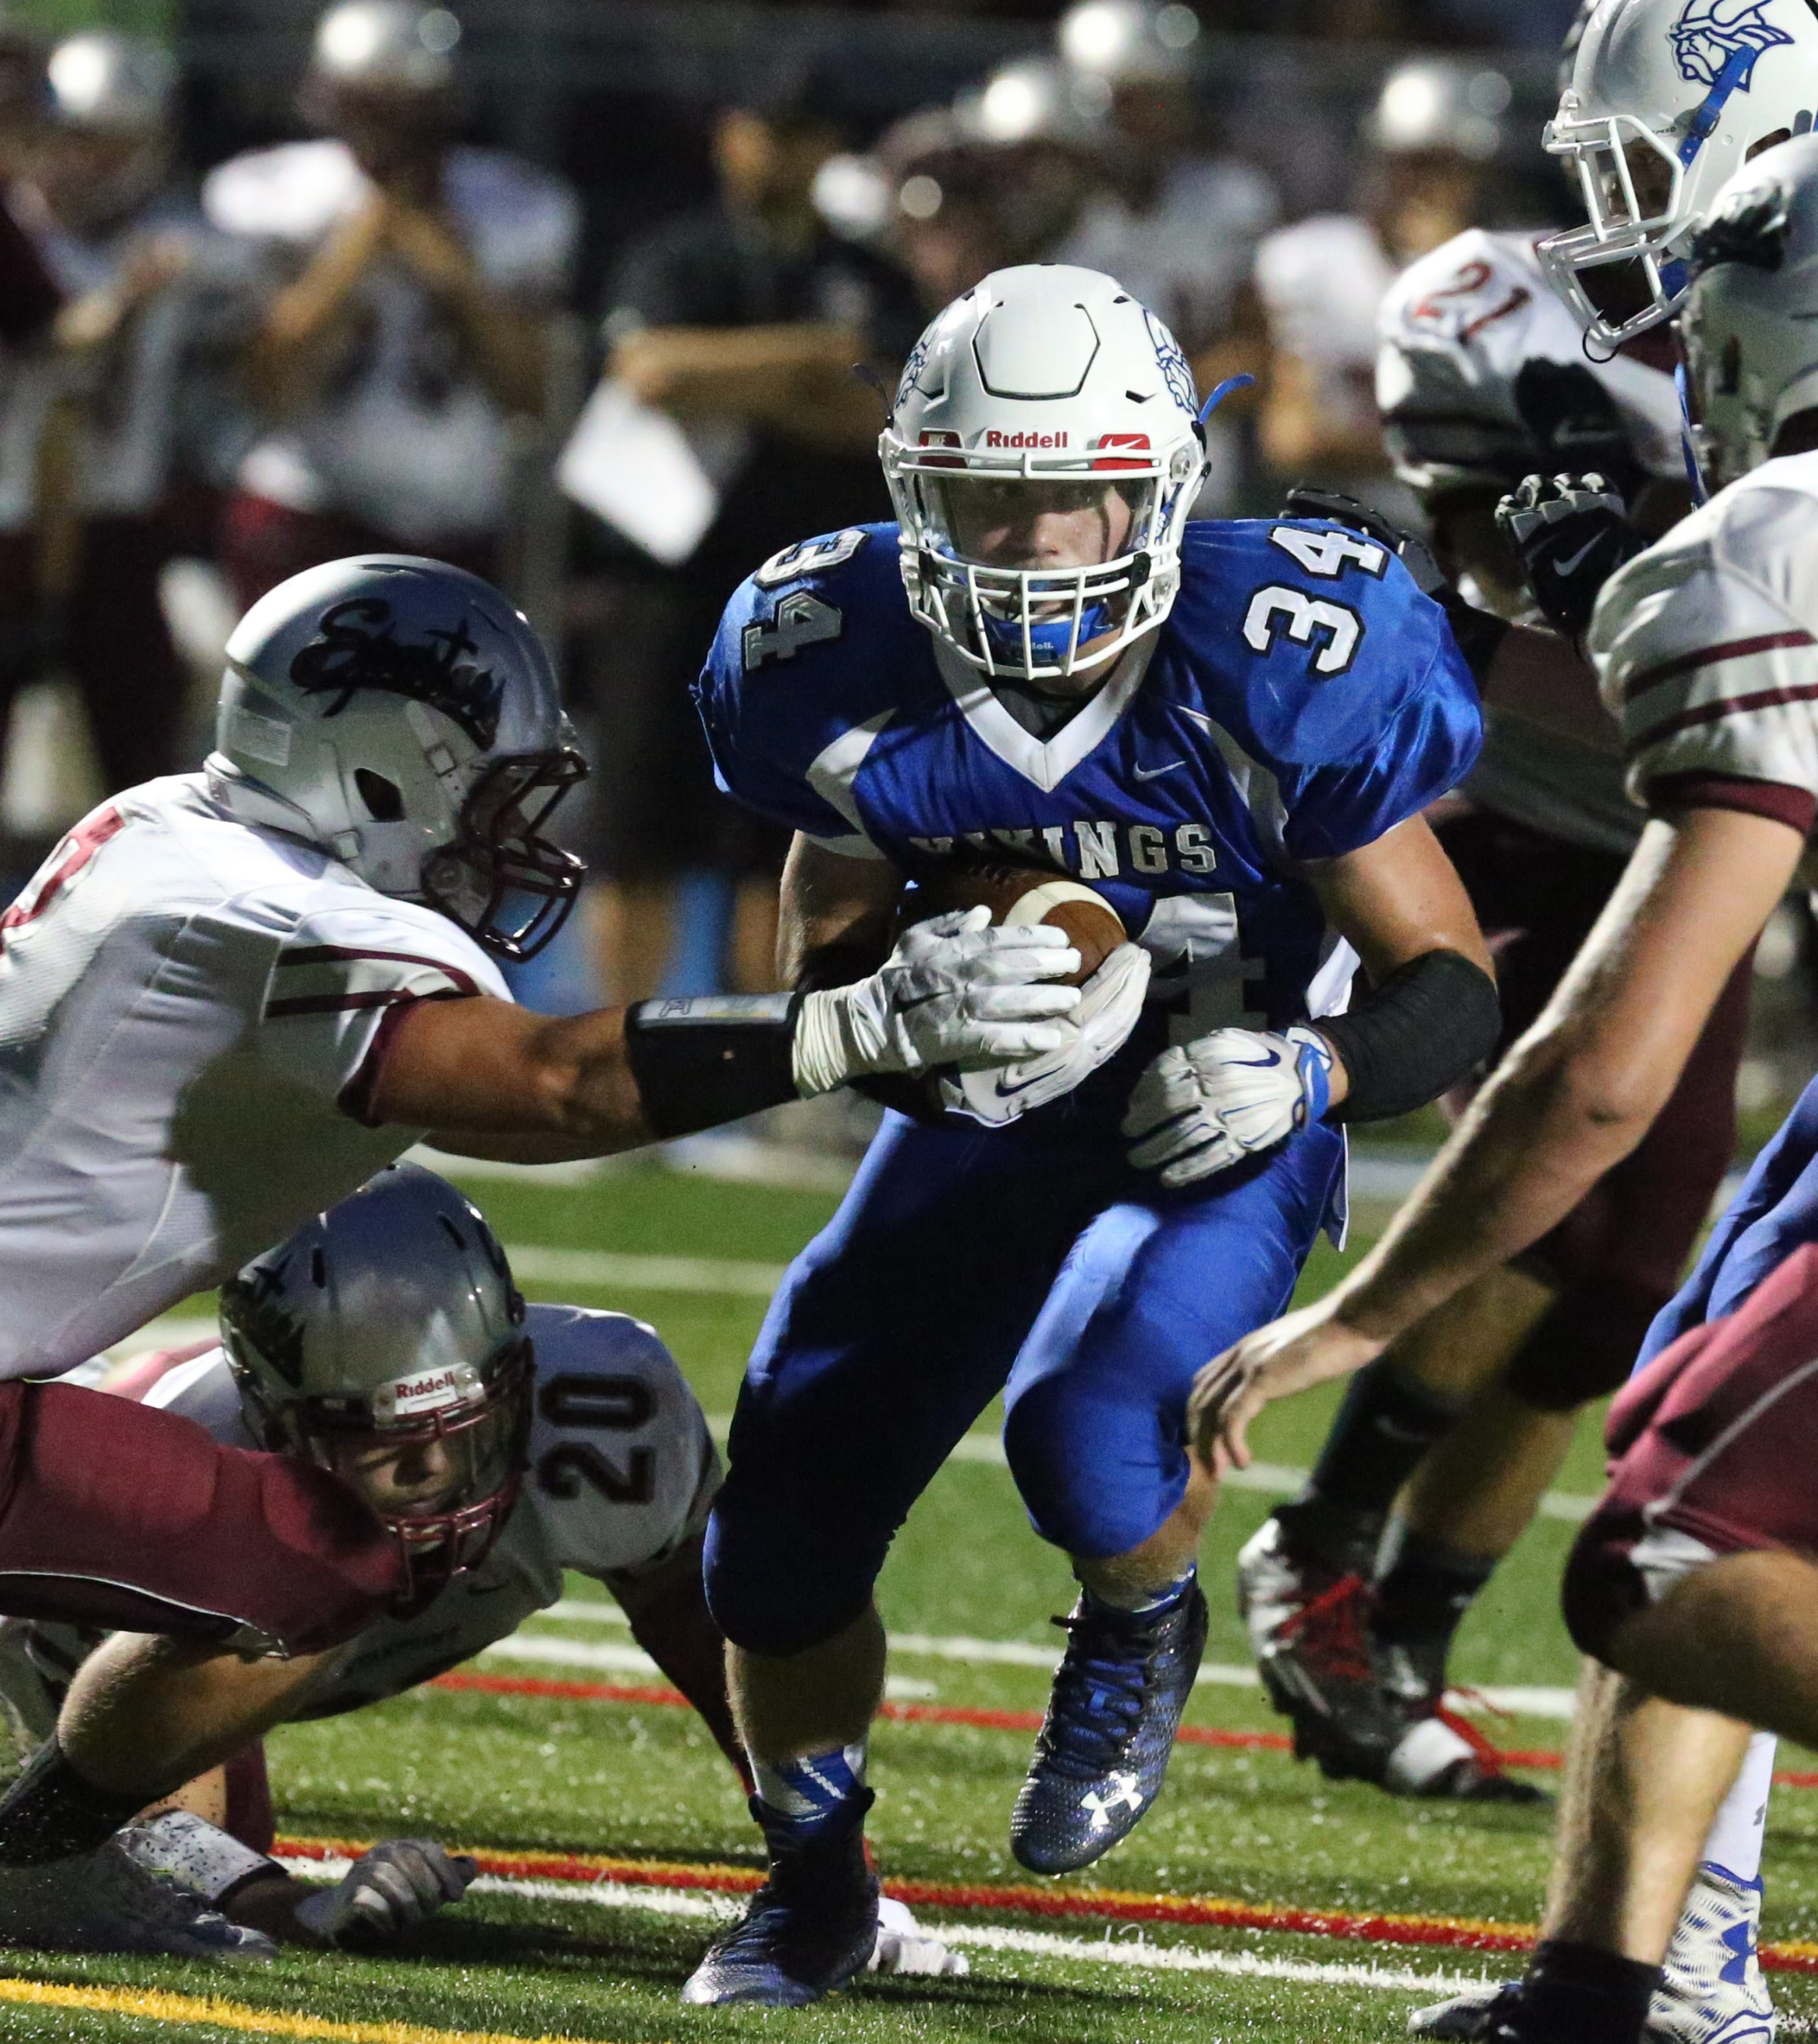 Grand Island's Jarod Brandon beats Starpoint's Austin Bowden for a first down in the first quarter at Grand Island High School in Grand Island,NY on Friday, Sept. 18, 2015.  (James P. McCoy/ Buffalo News)